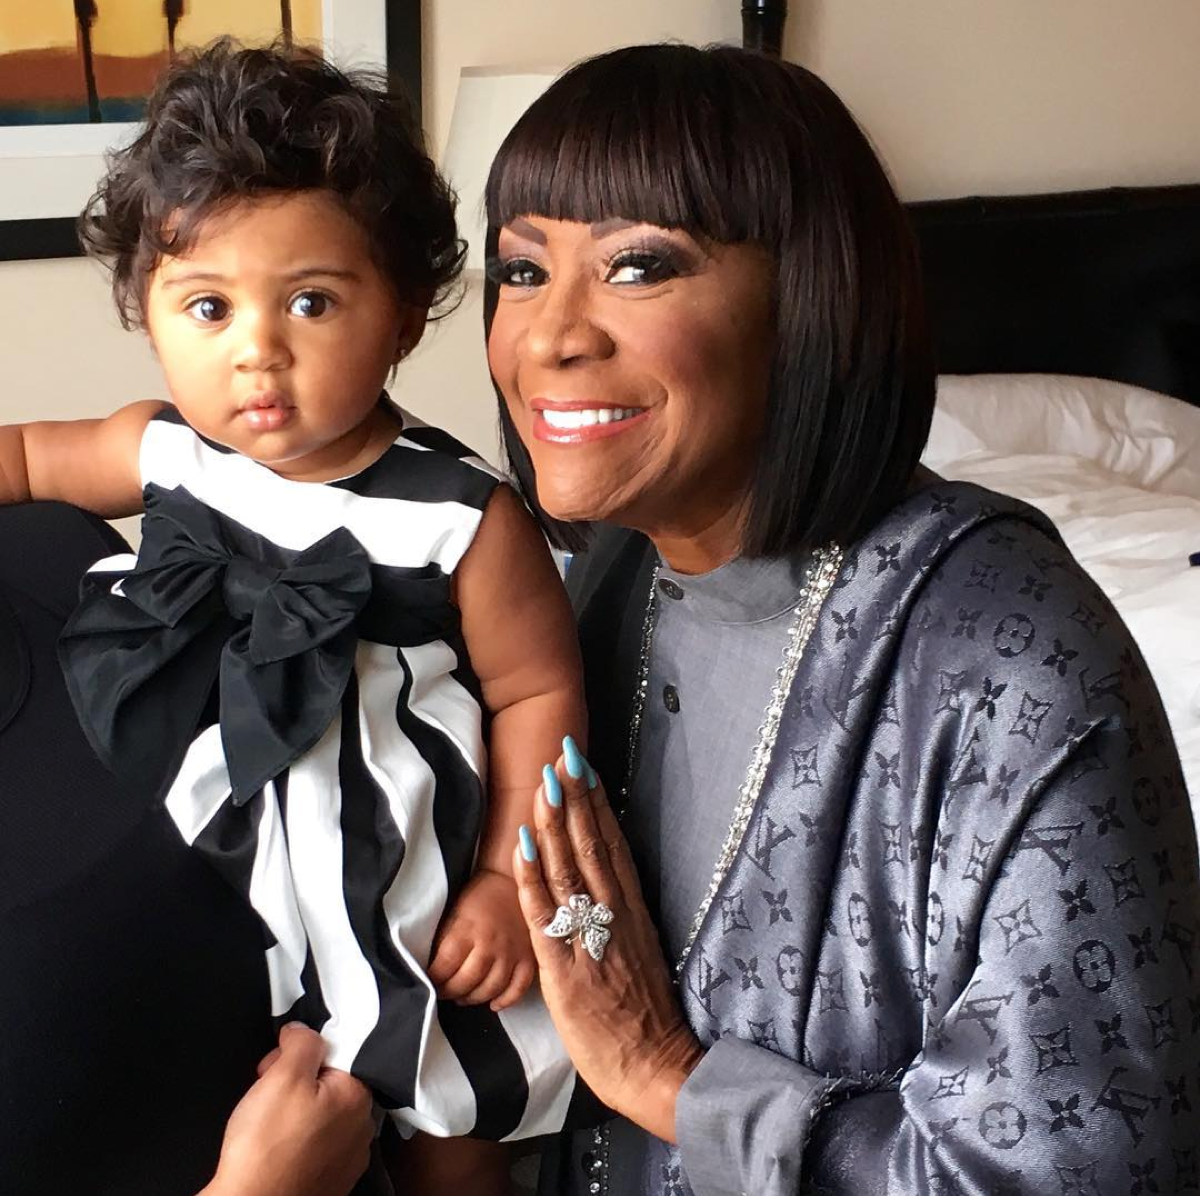 Patti LaBelle Patti LaBelle new picture